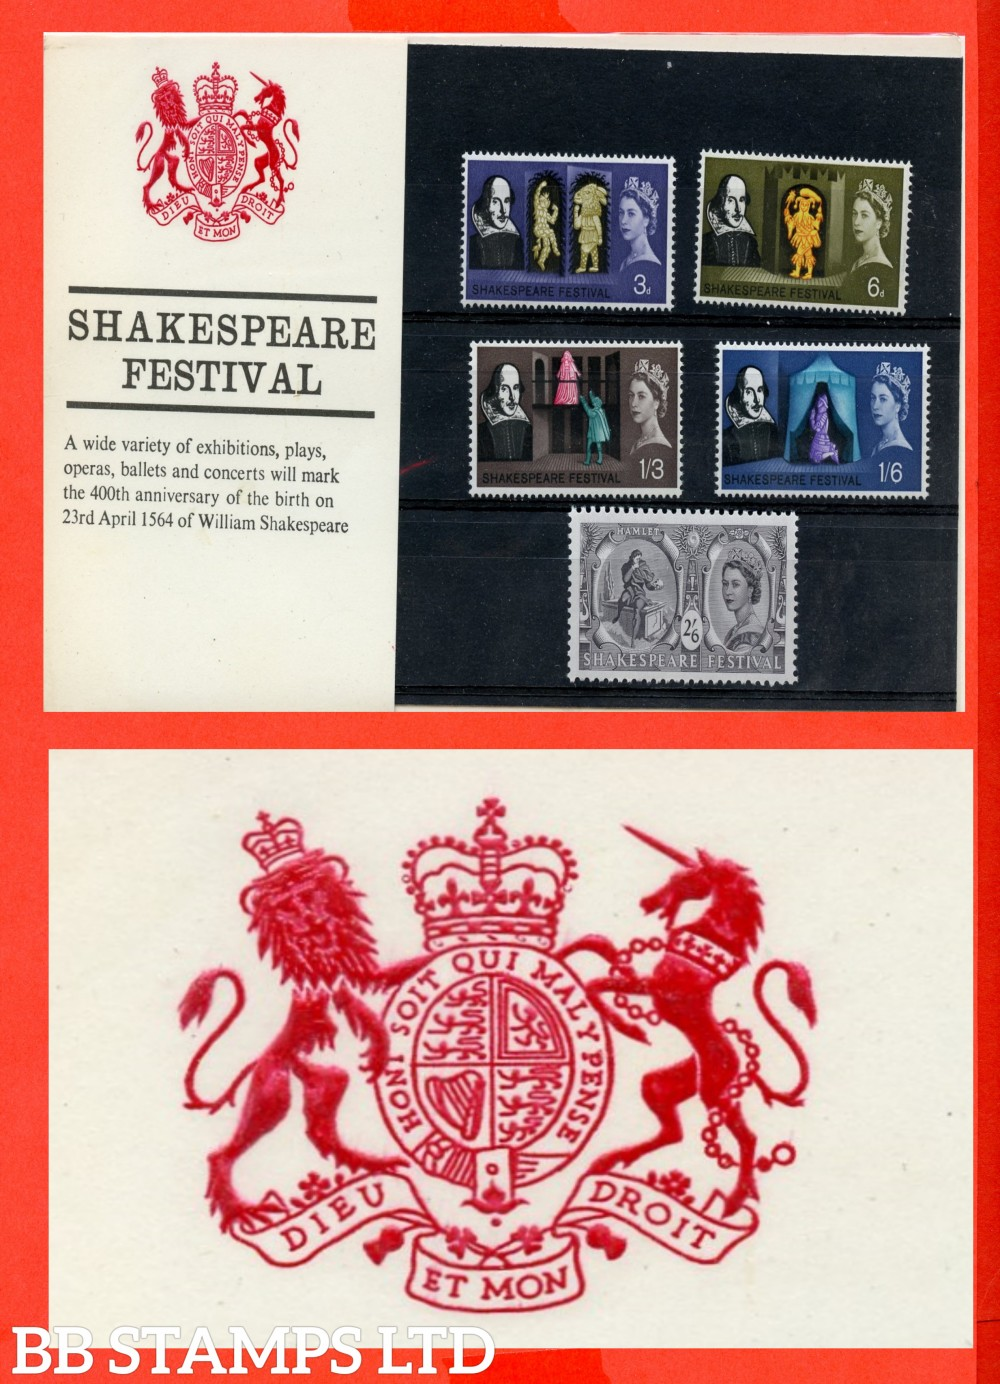 1964 Shakespeare Festival. (Pres Pack is Type A = Unicorns Collar Decorated With fleur-de-lys)